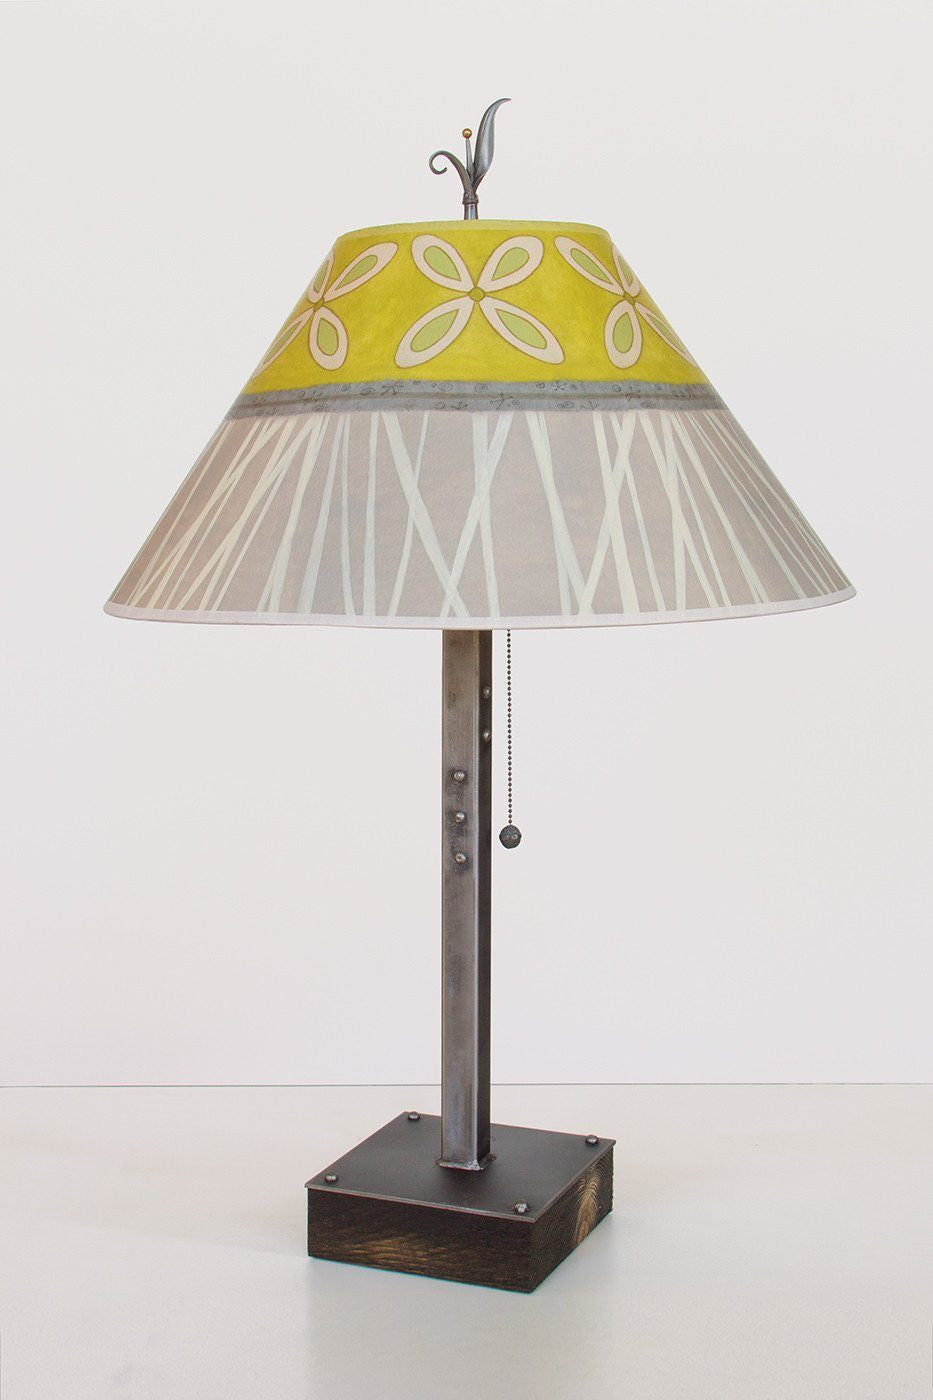 Steel Table Lamp on Wood with Large Conical Shade in Kiwi